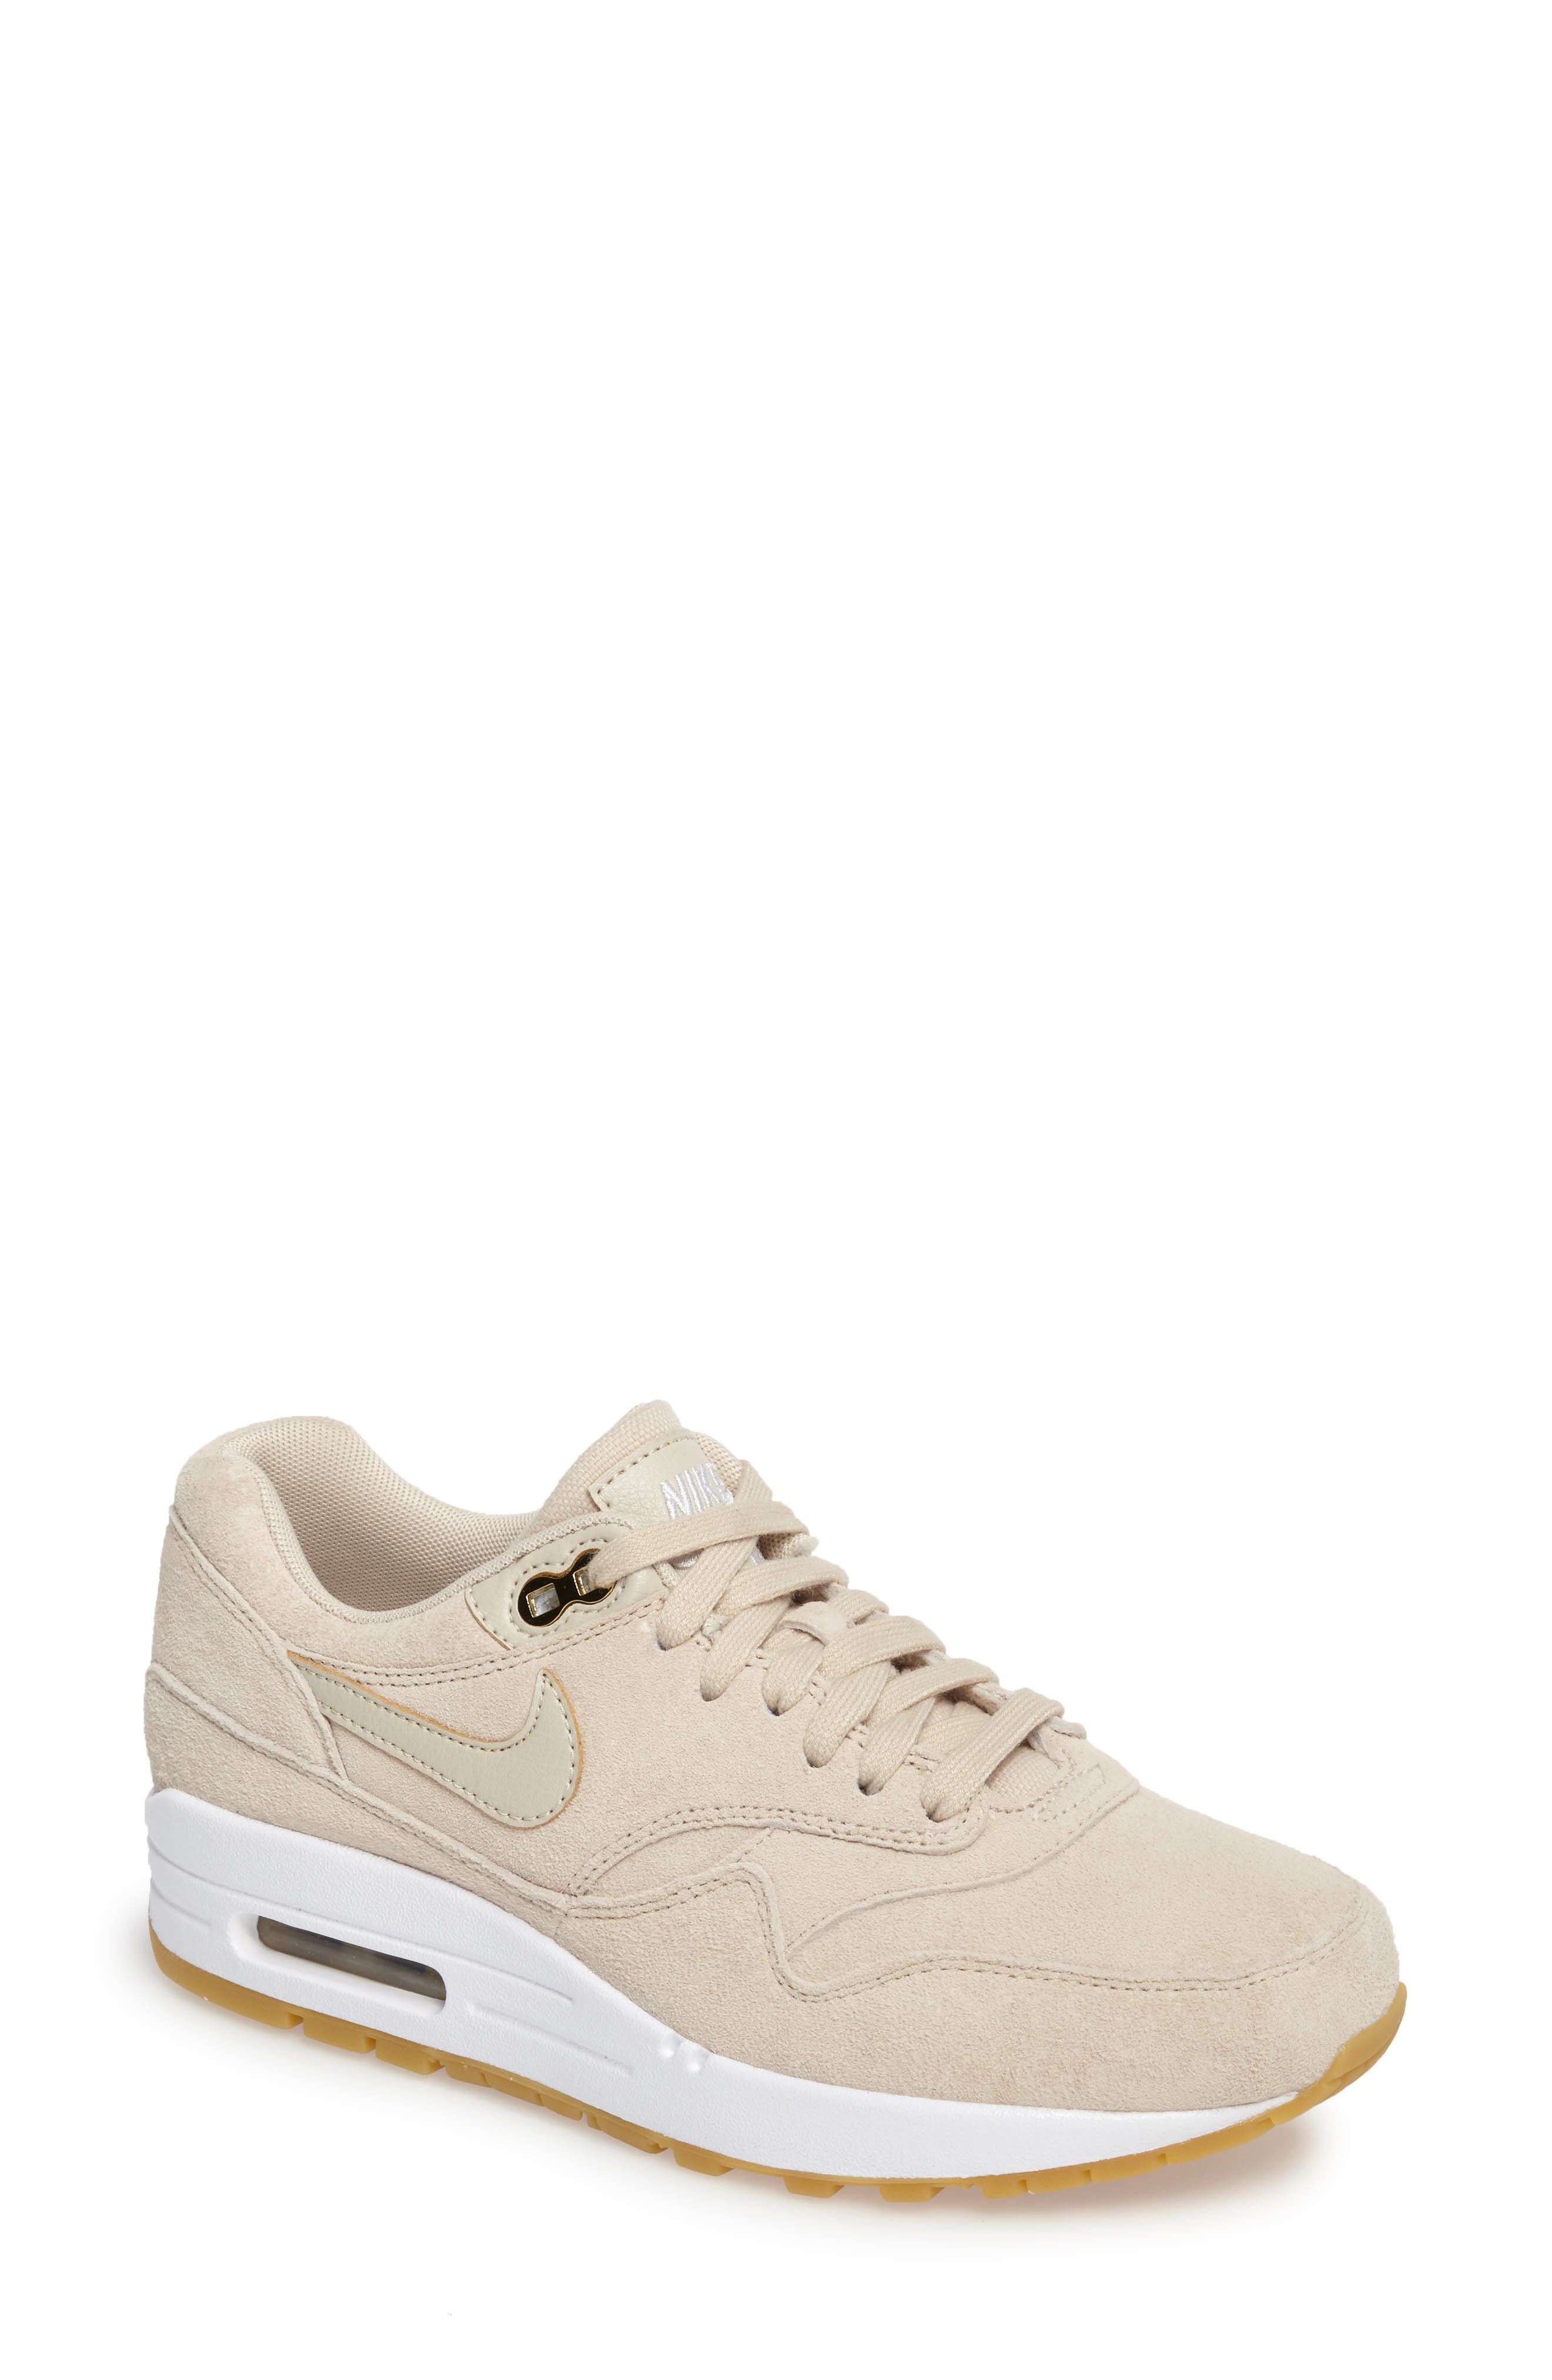 Alternate Image 1 Selected - Nike Air Max 1 SD Sneaker (Women)